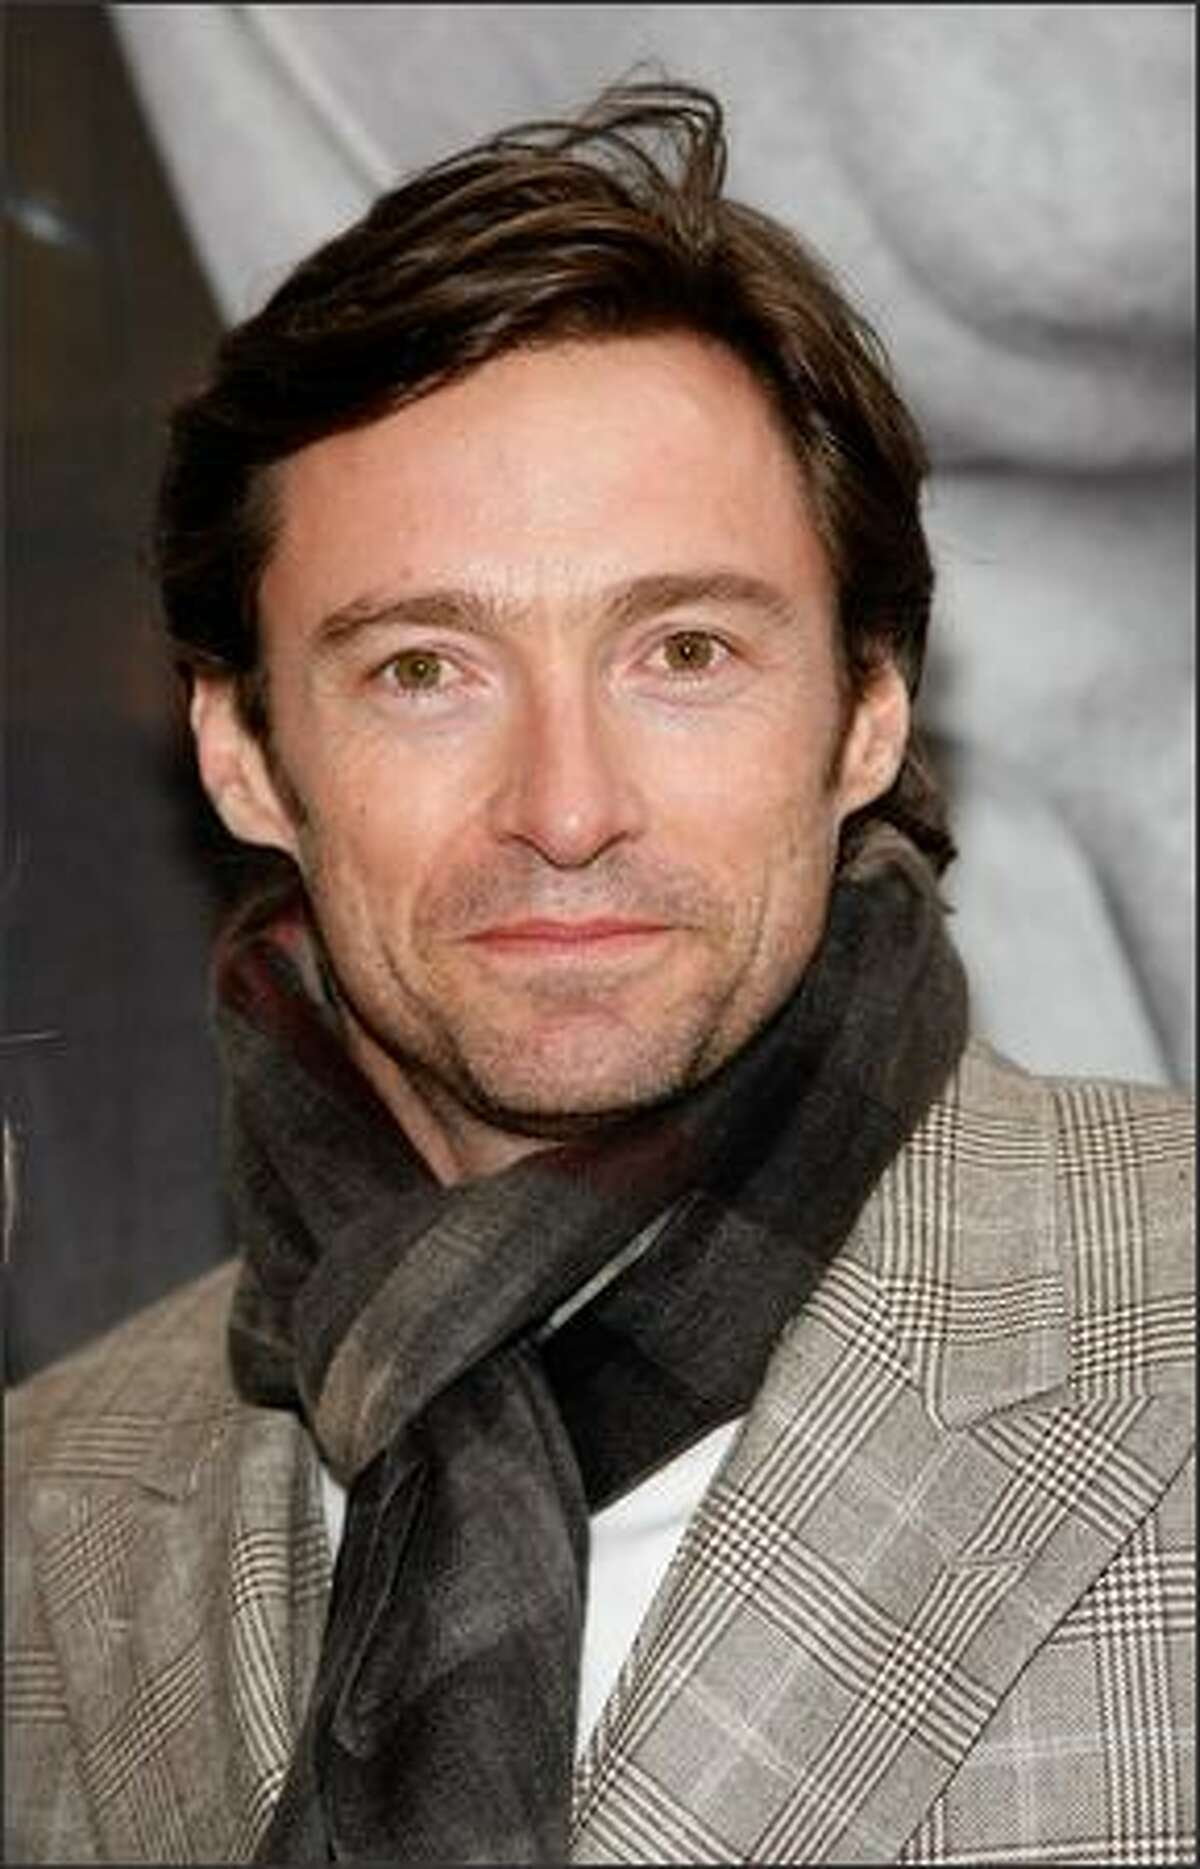 Actor Hugh Jackman attends the Broadway opening of